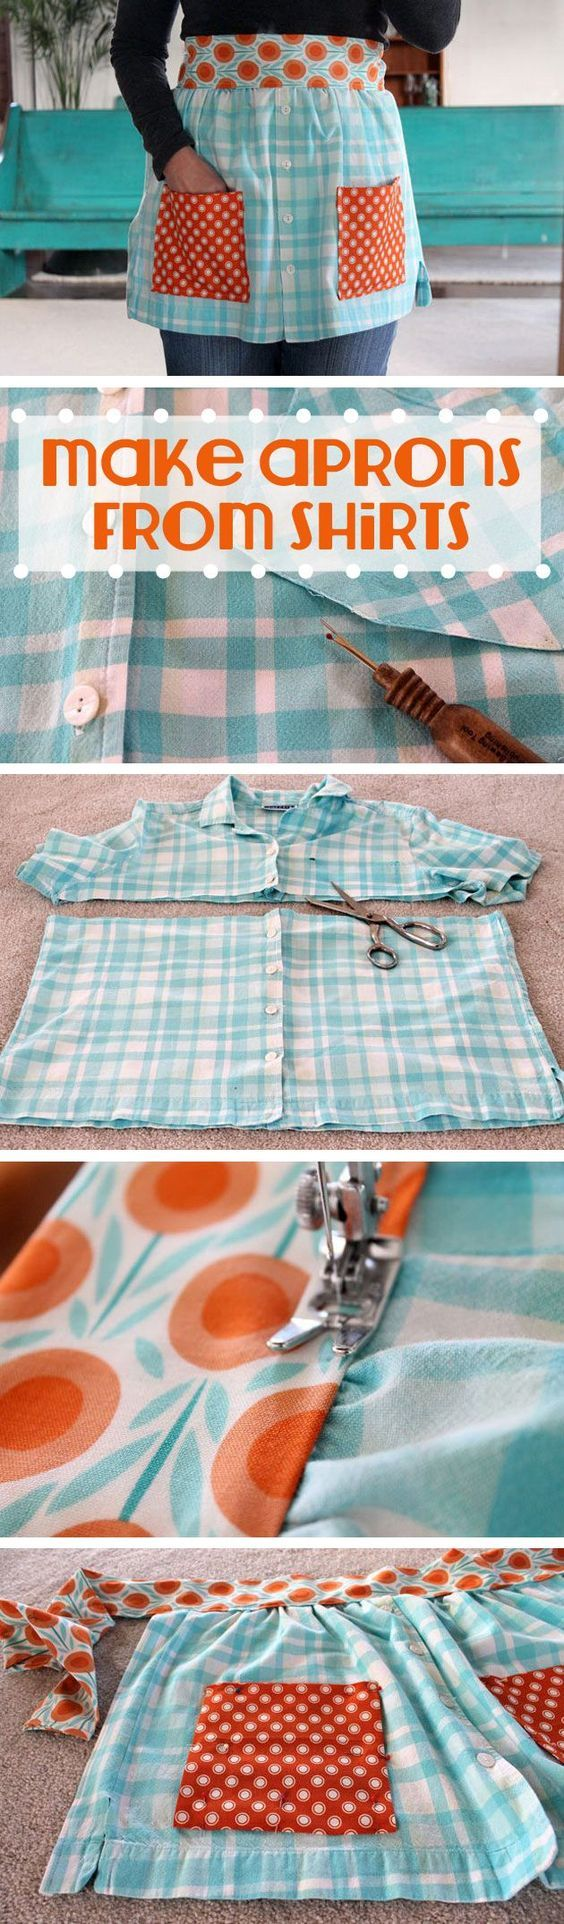 Make an adorable apron from old t-shirts! Beth Huntington has the best ideas for transforming old shirts and things into new, fashion-forward wearable items. This is great for beginner sewers or experienced ones!: